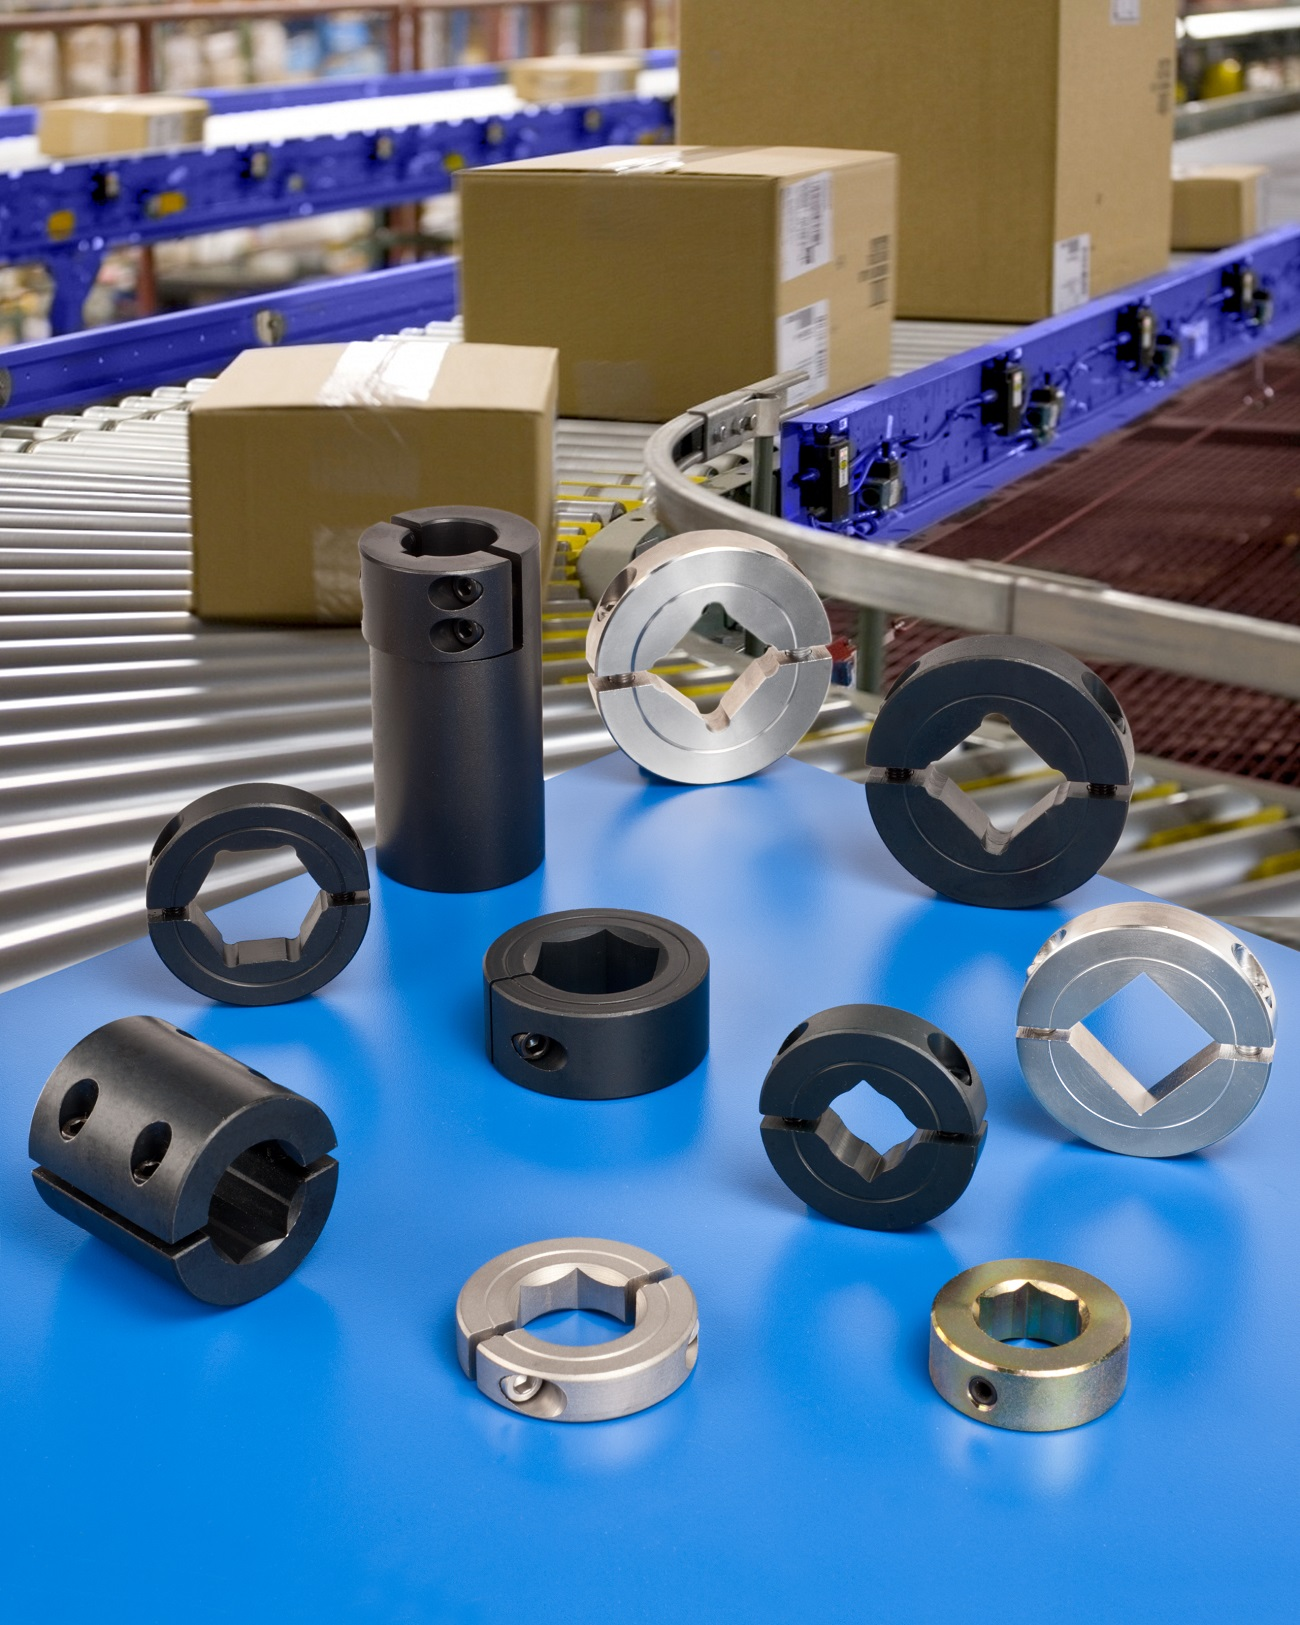 SHAFT COLLARS & COUPLINGS FOR CONVEYOR DRIVE AND ROLLER SYSTEMS